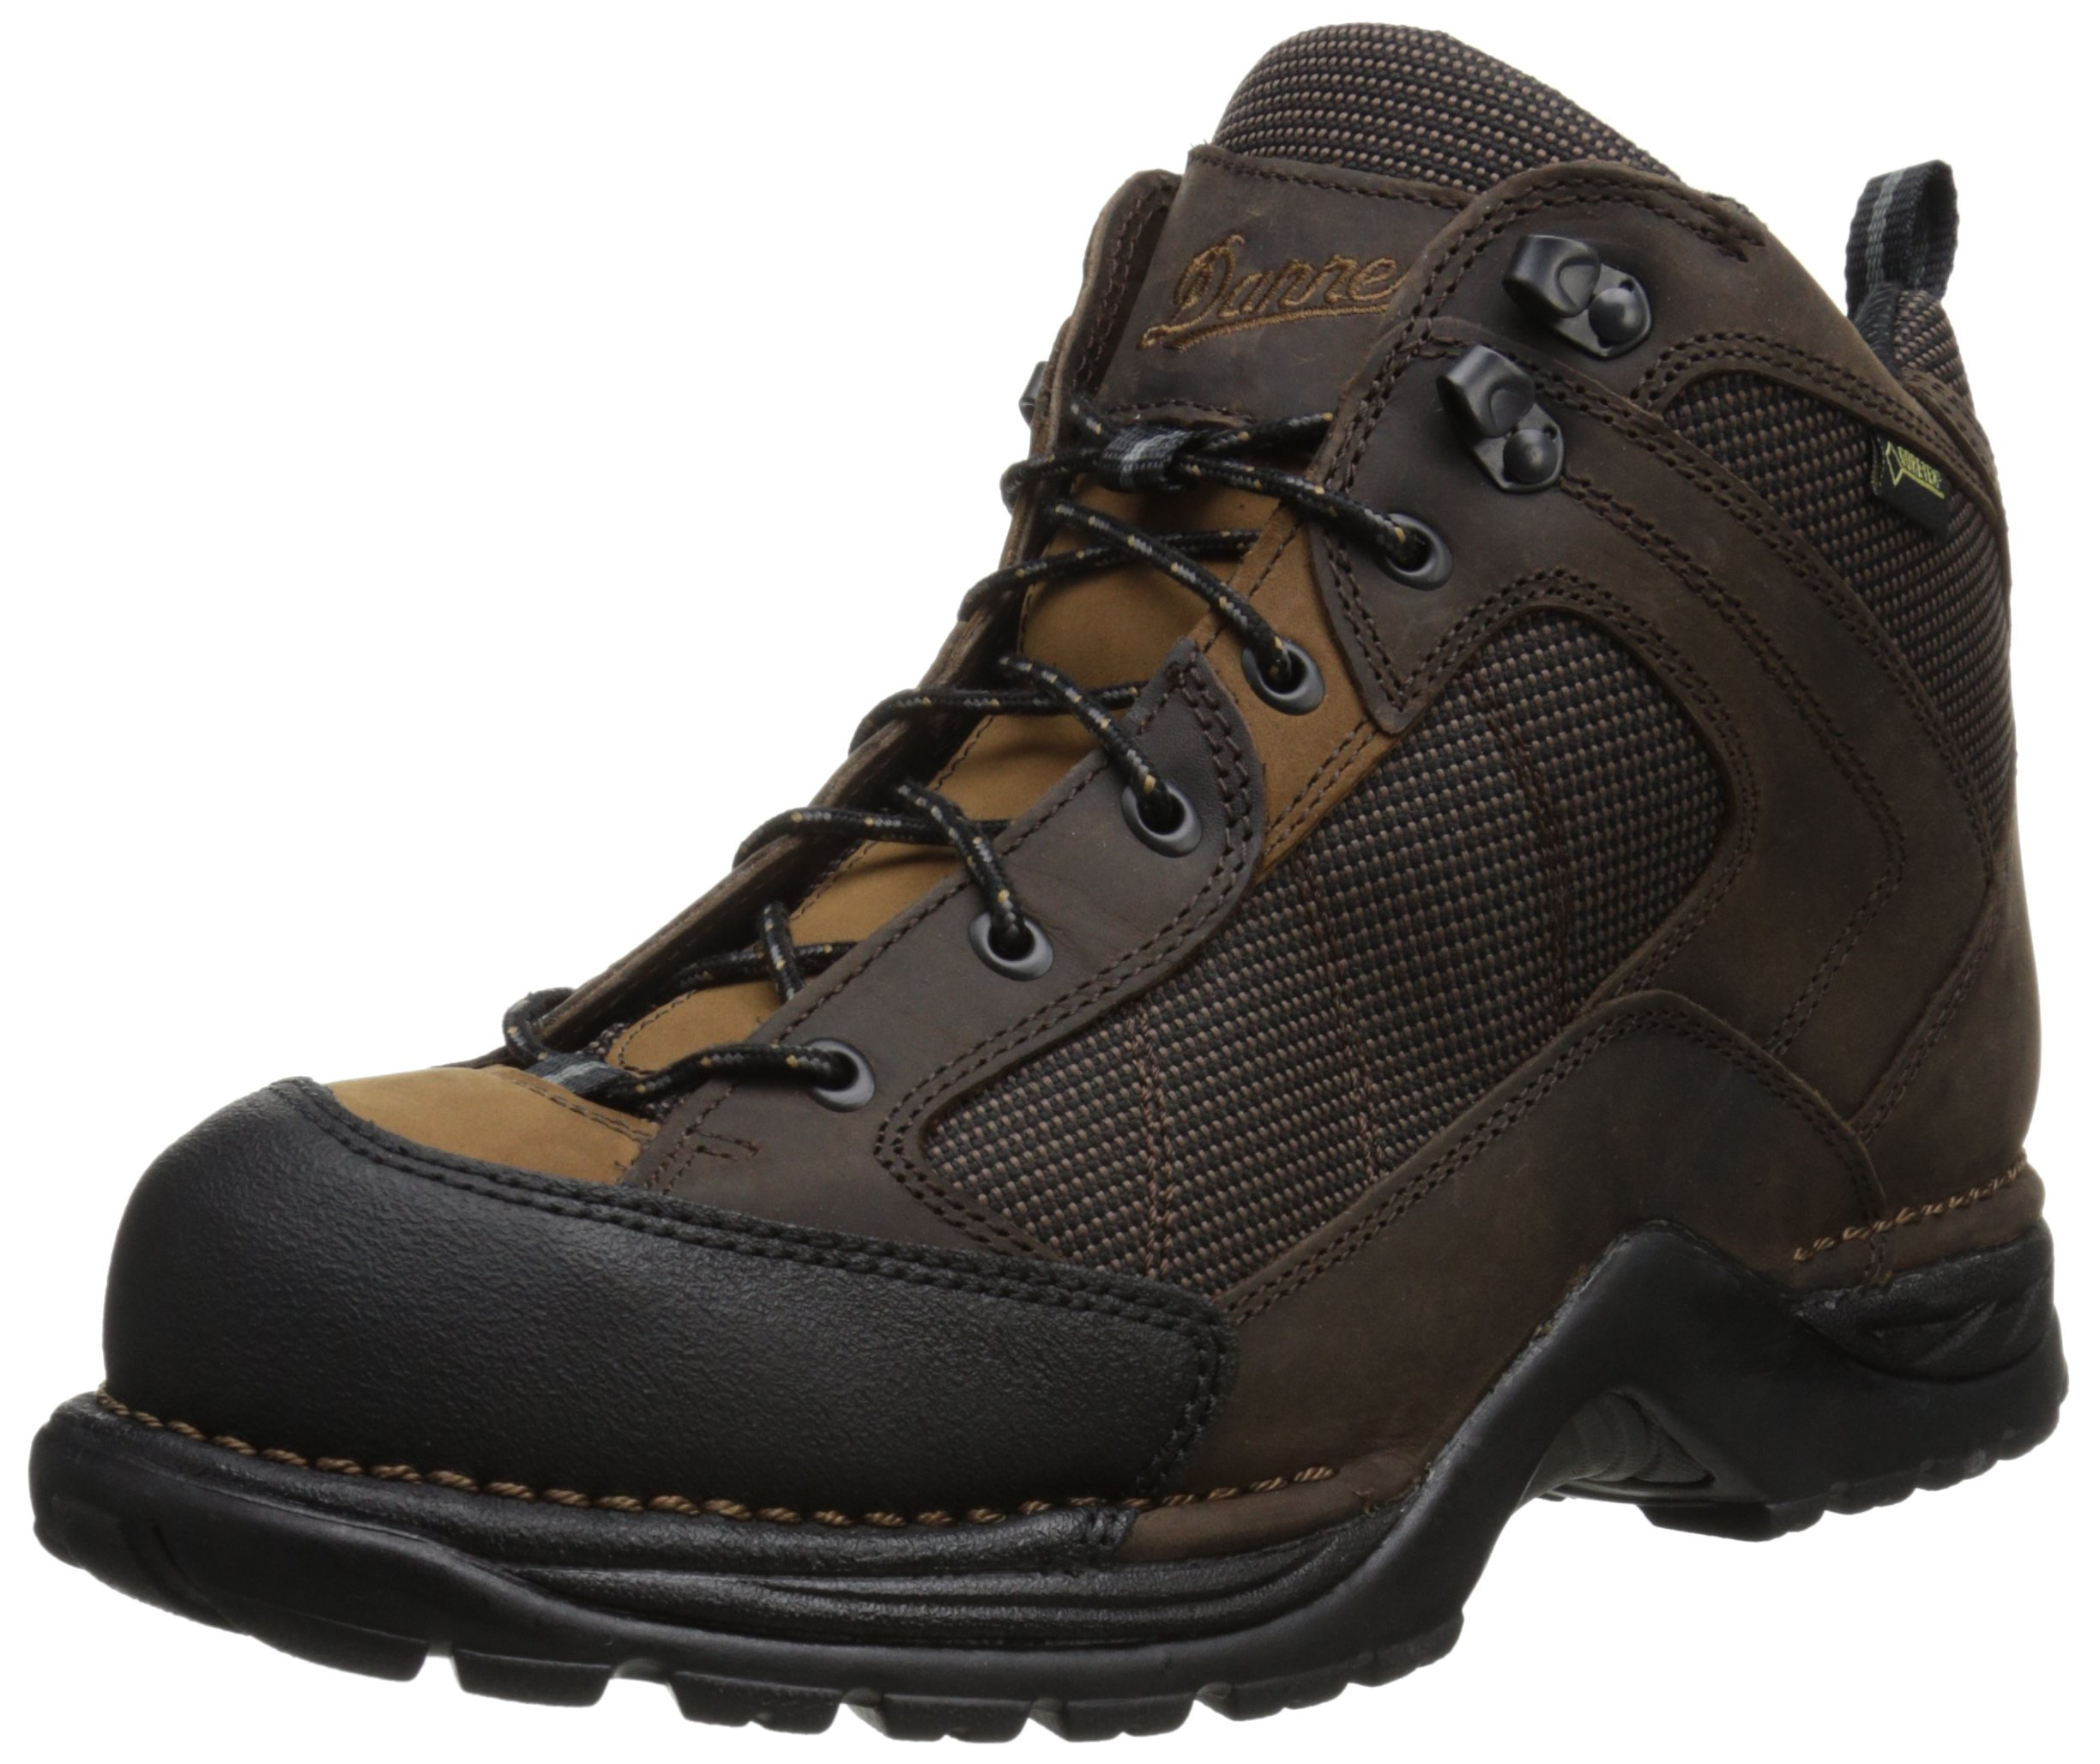 Danner Men's Radical 452 GTX Outdoor Boot,Dark Brown,9.5 D US